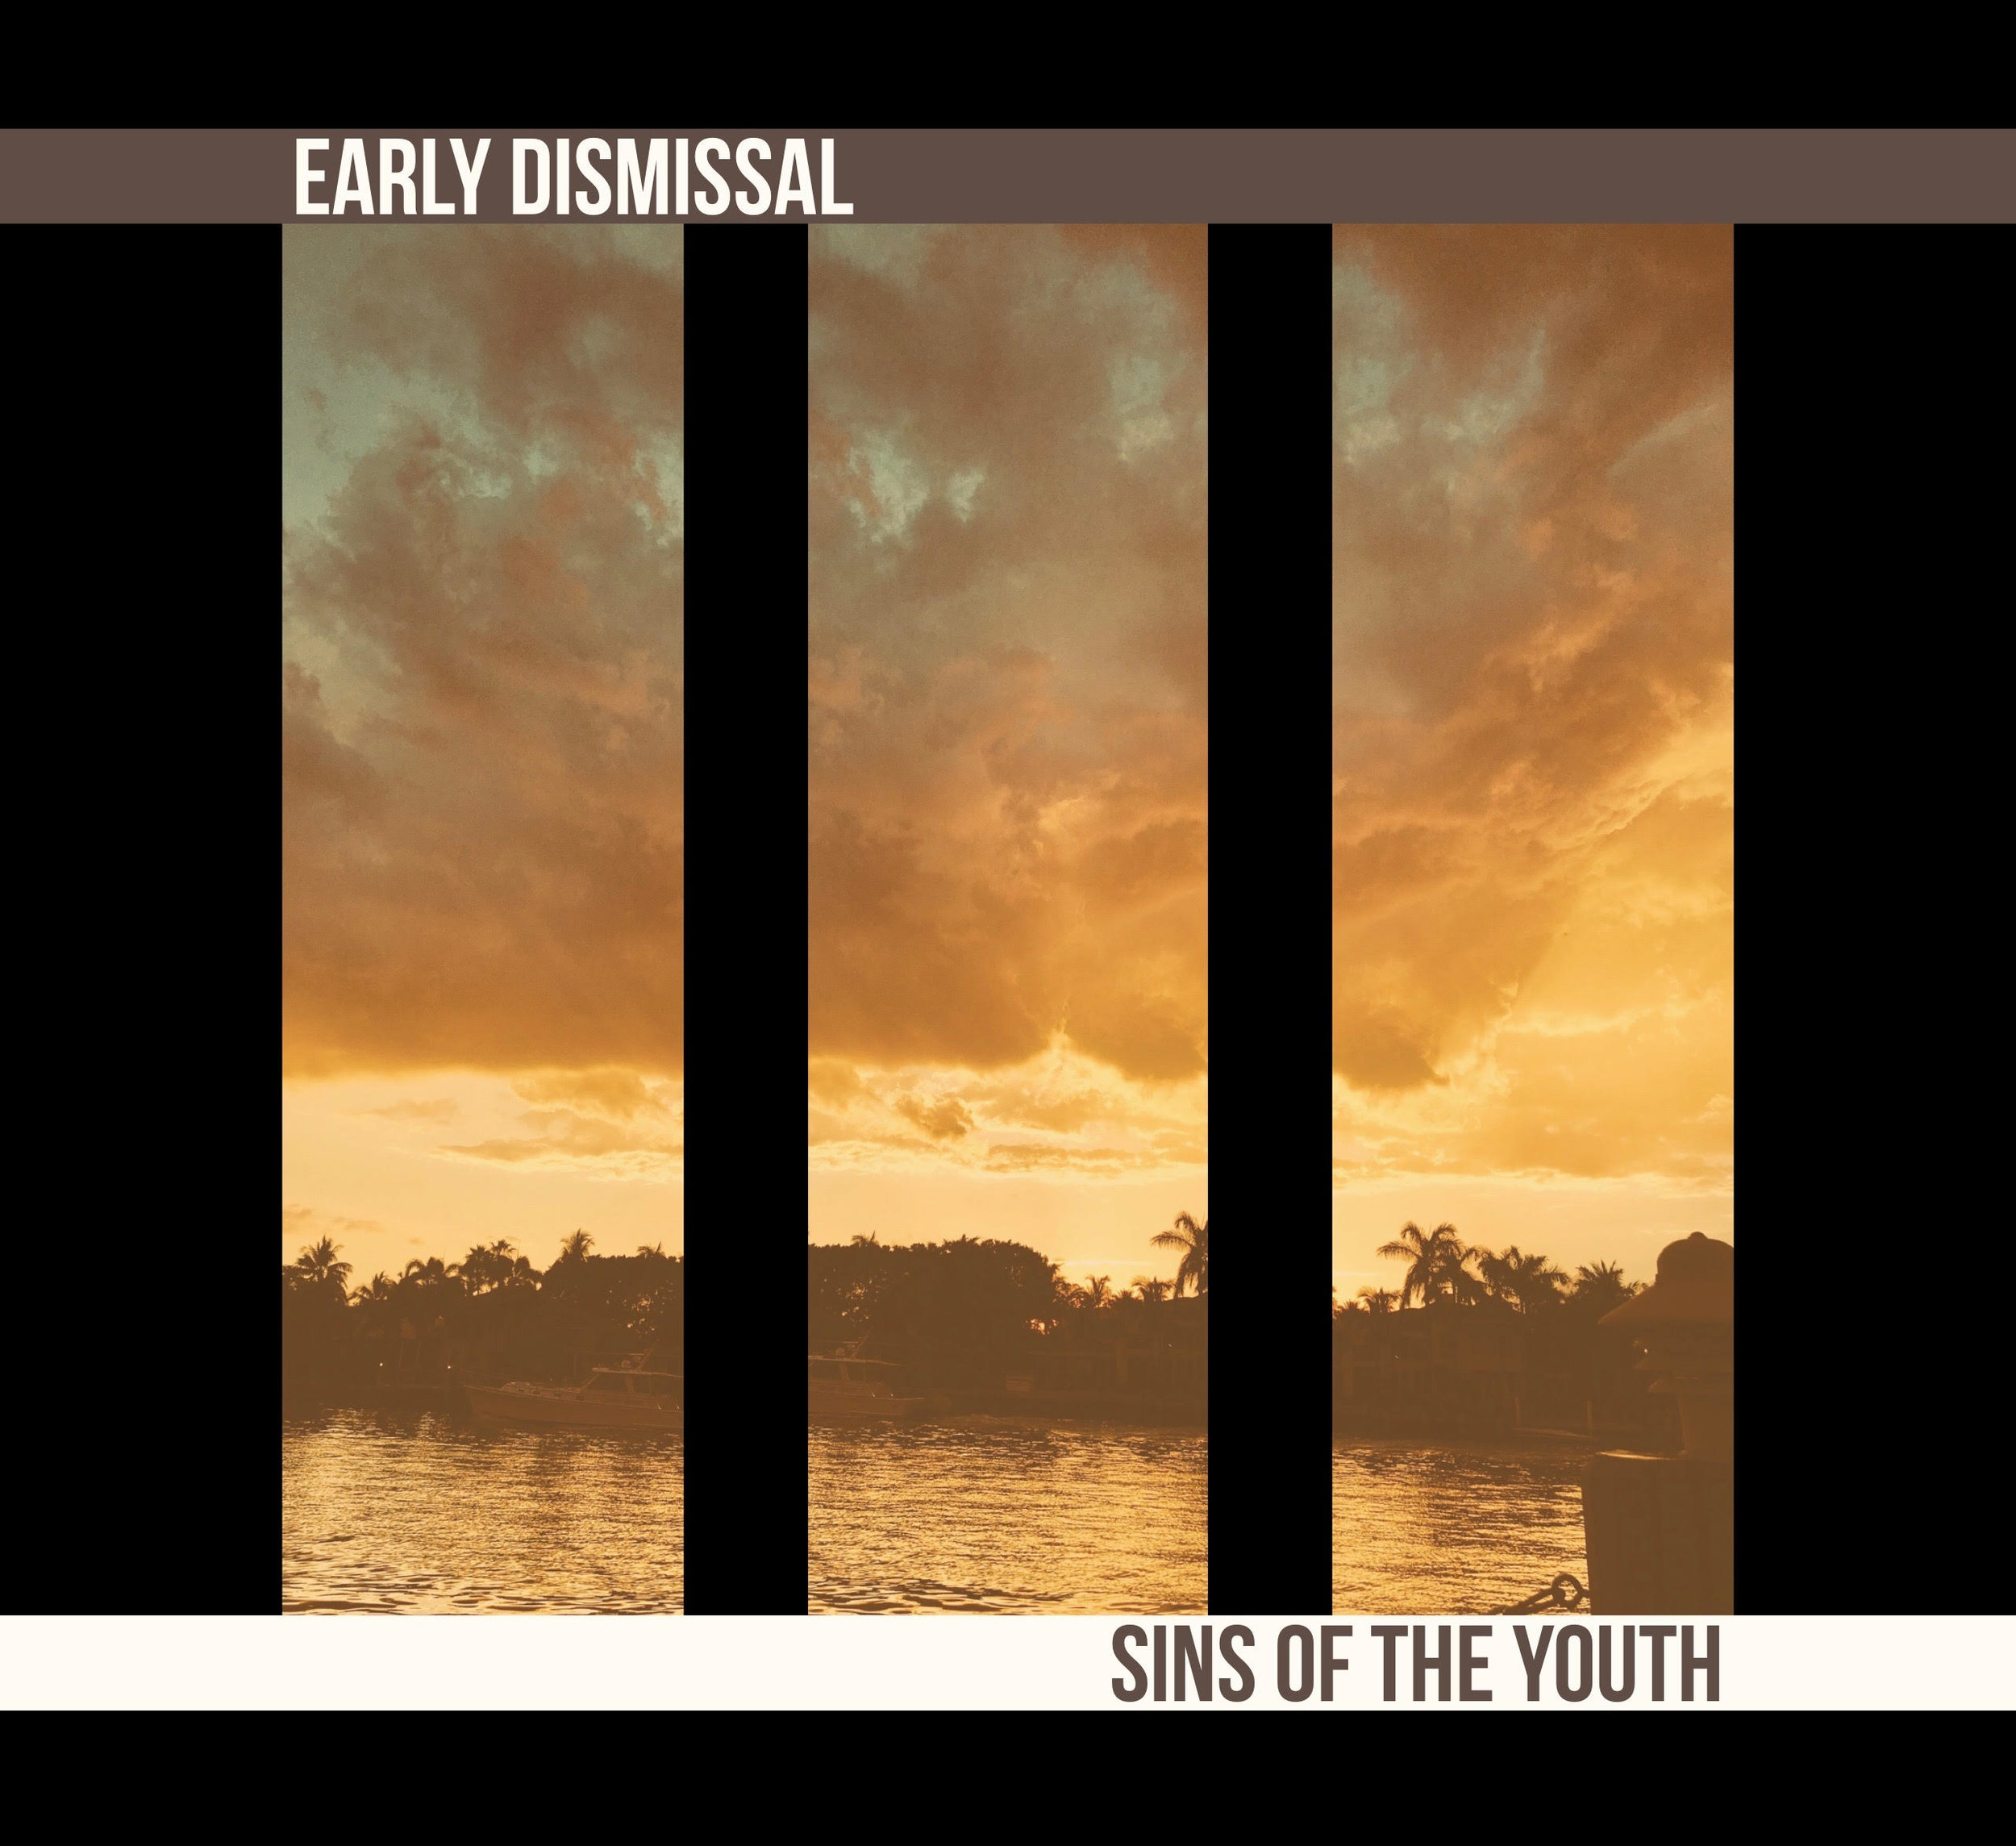 Listen to Sins of the Youth by Early Dismissal on Apple Music